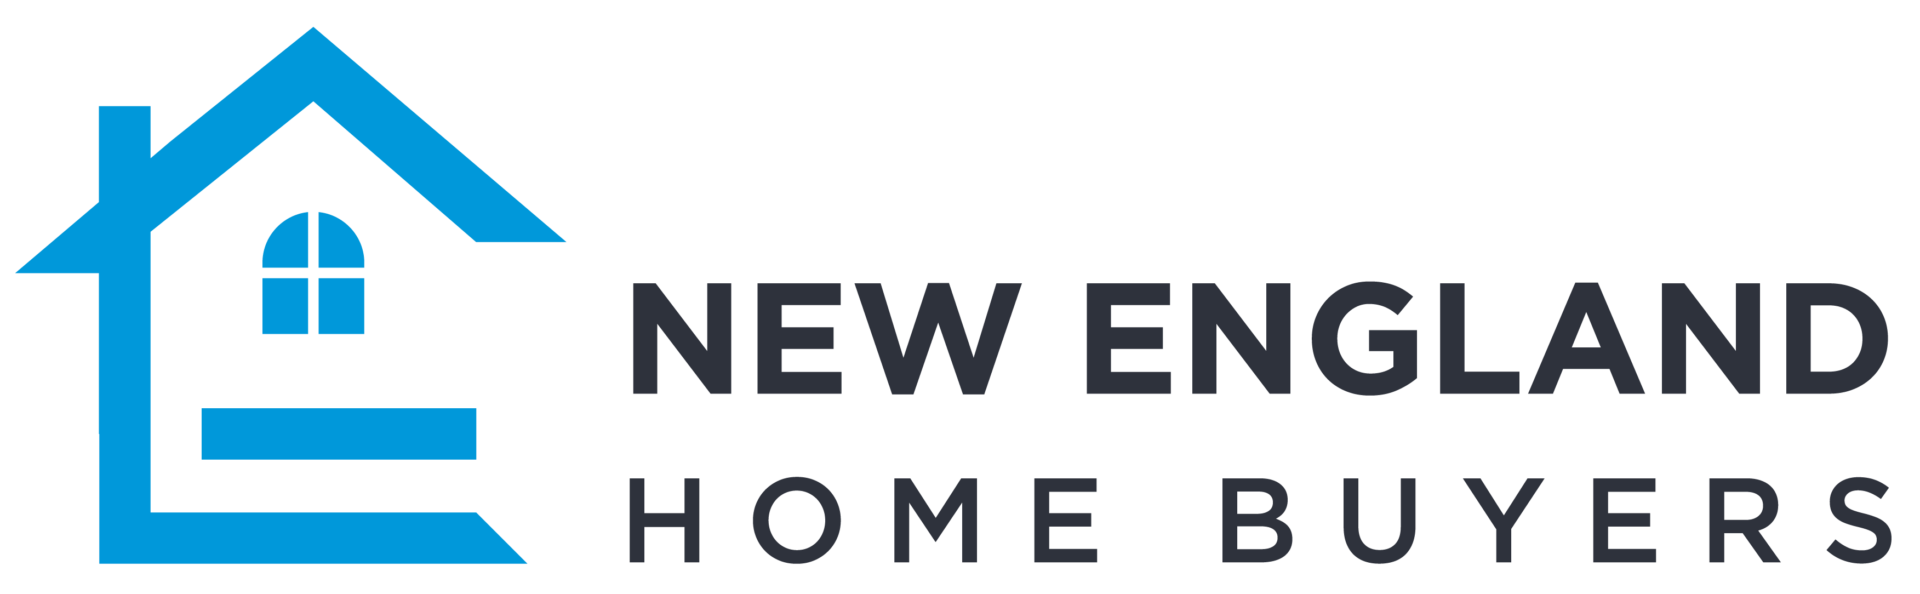 We Buy Houses Here logo